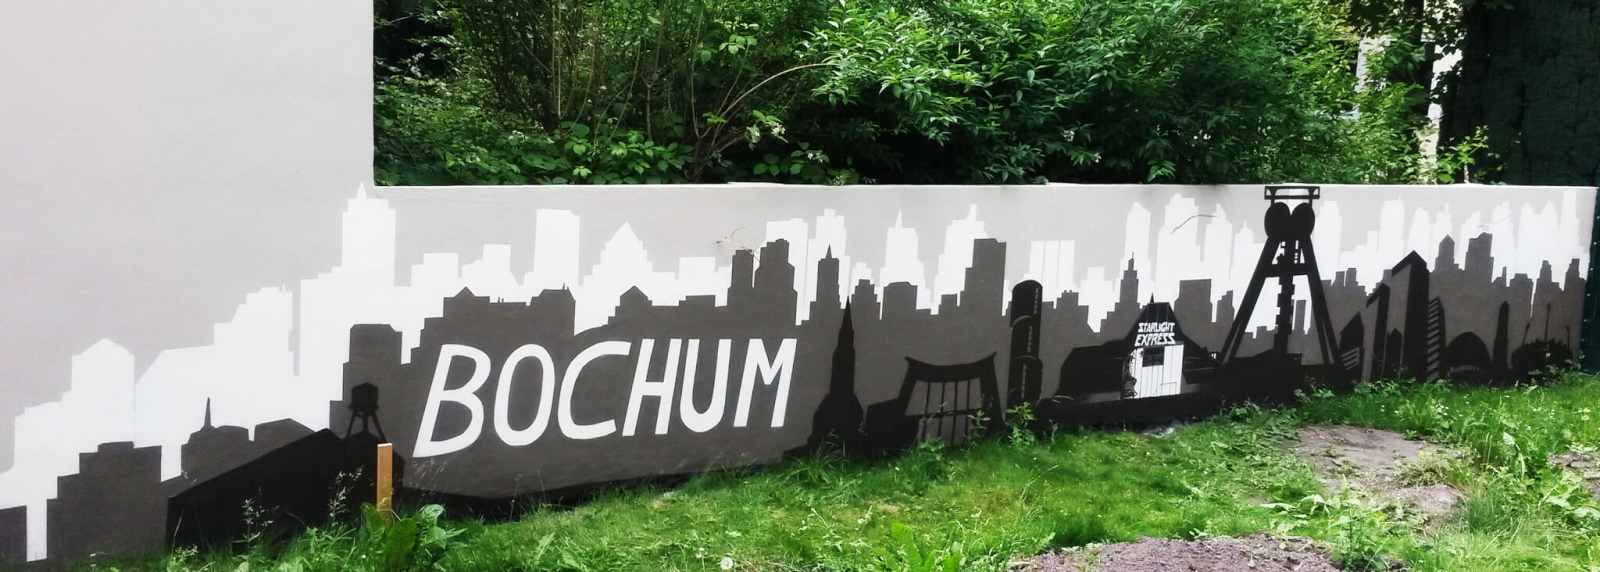 Bochum Skyline Starlightexpress Garten